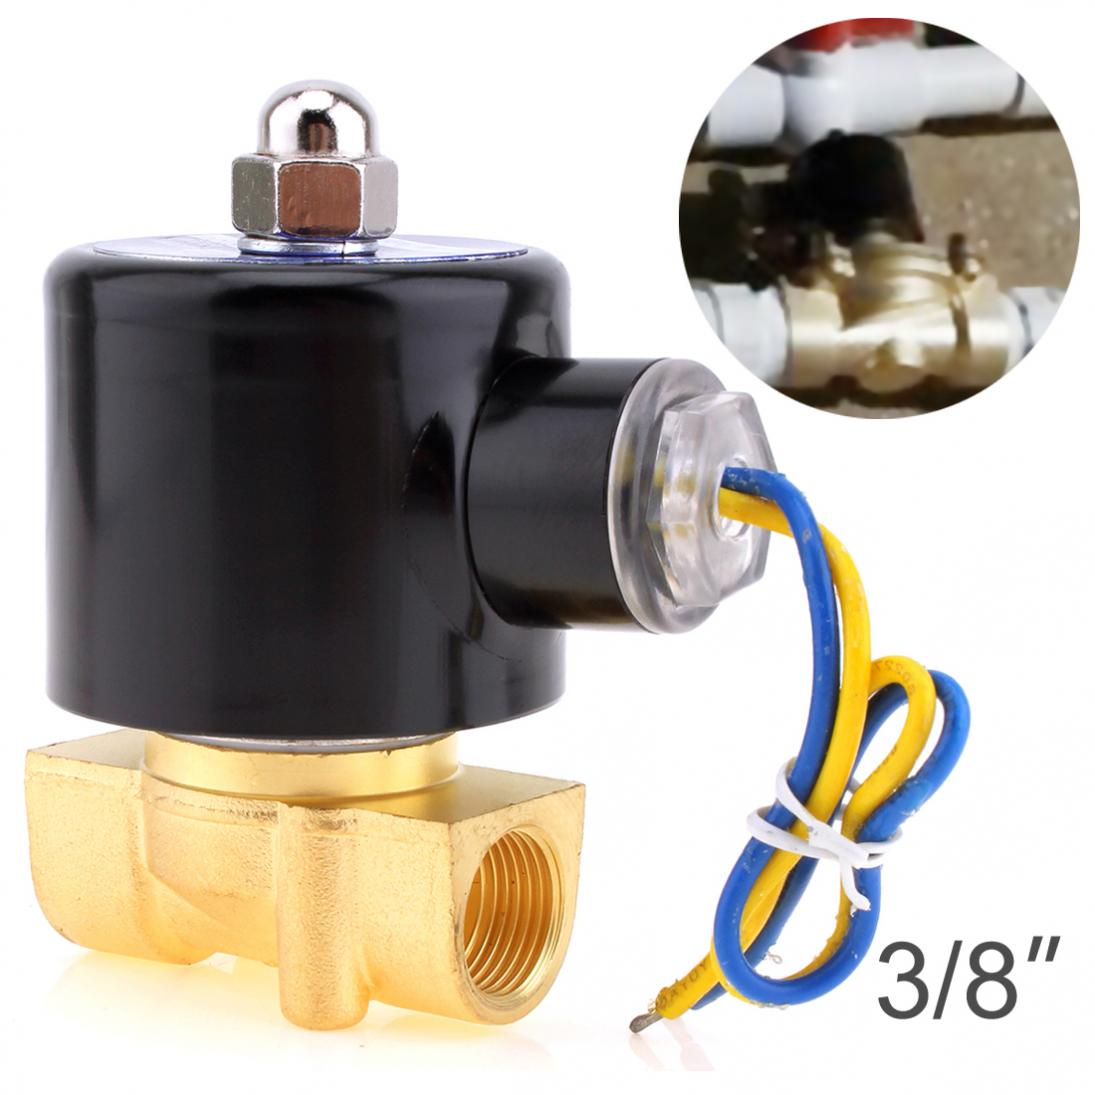 Solenoid Valve DC 12V 3/8 NPT N/C Brass Normally Closed Electric Valve for Water Oil Air Diesel-Gas FuelsSolenoid Valve DC 12V 3/8 NPT N/C Brass Normally Closed Electric Valve for Water Oil Air Diesel-Gas Fuels